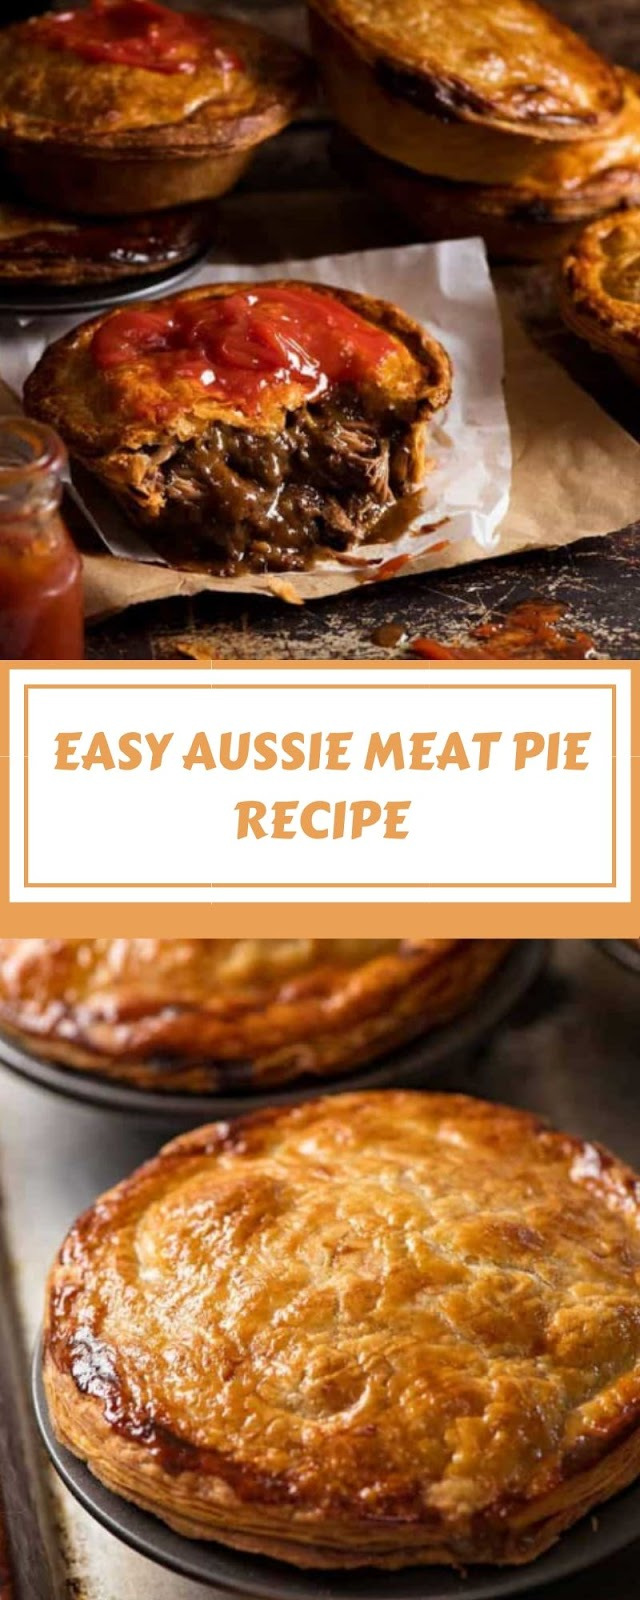 EASY AUSSIE MEAT PIE RECIPE